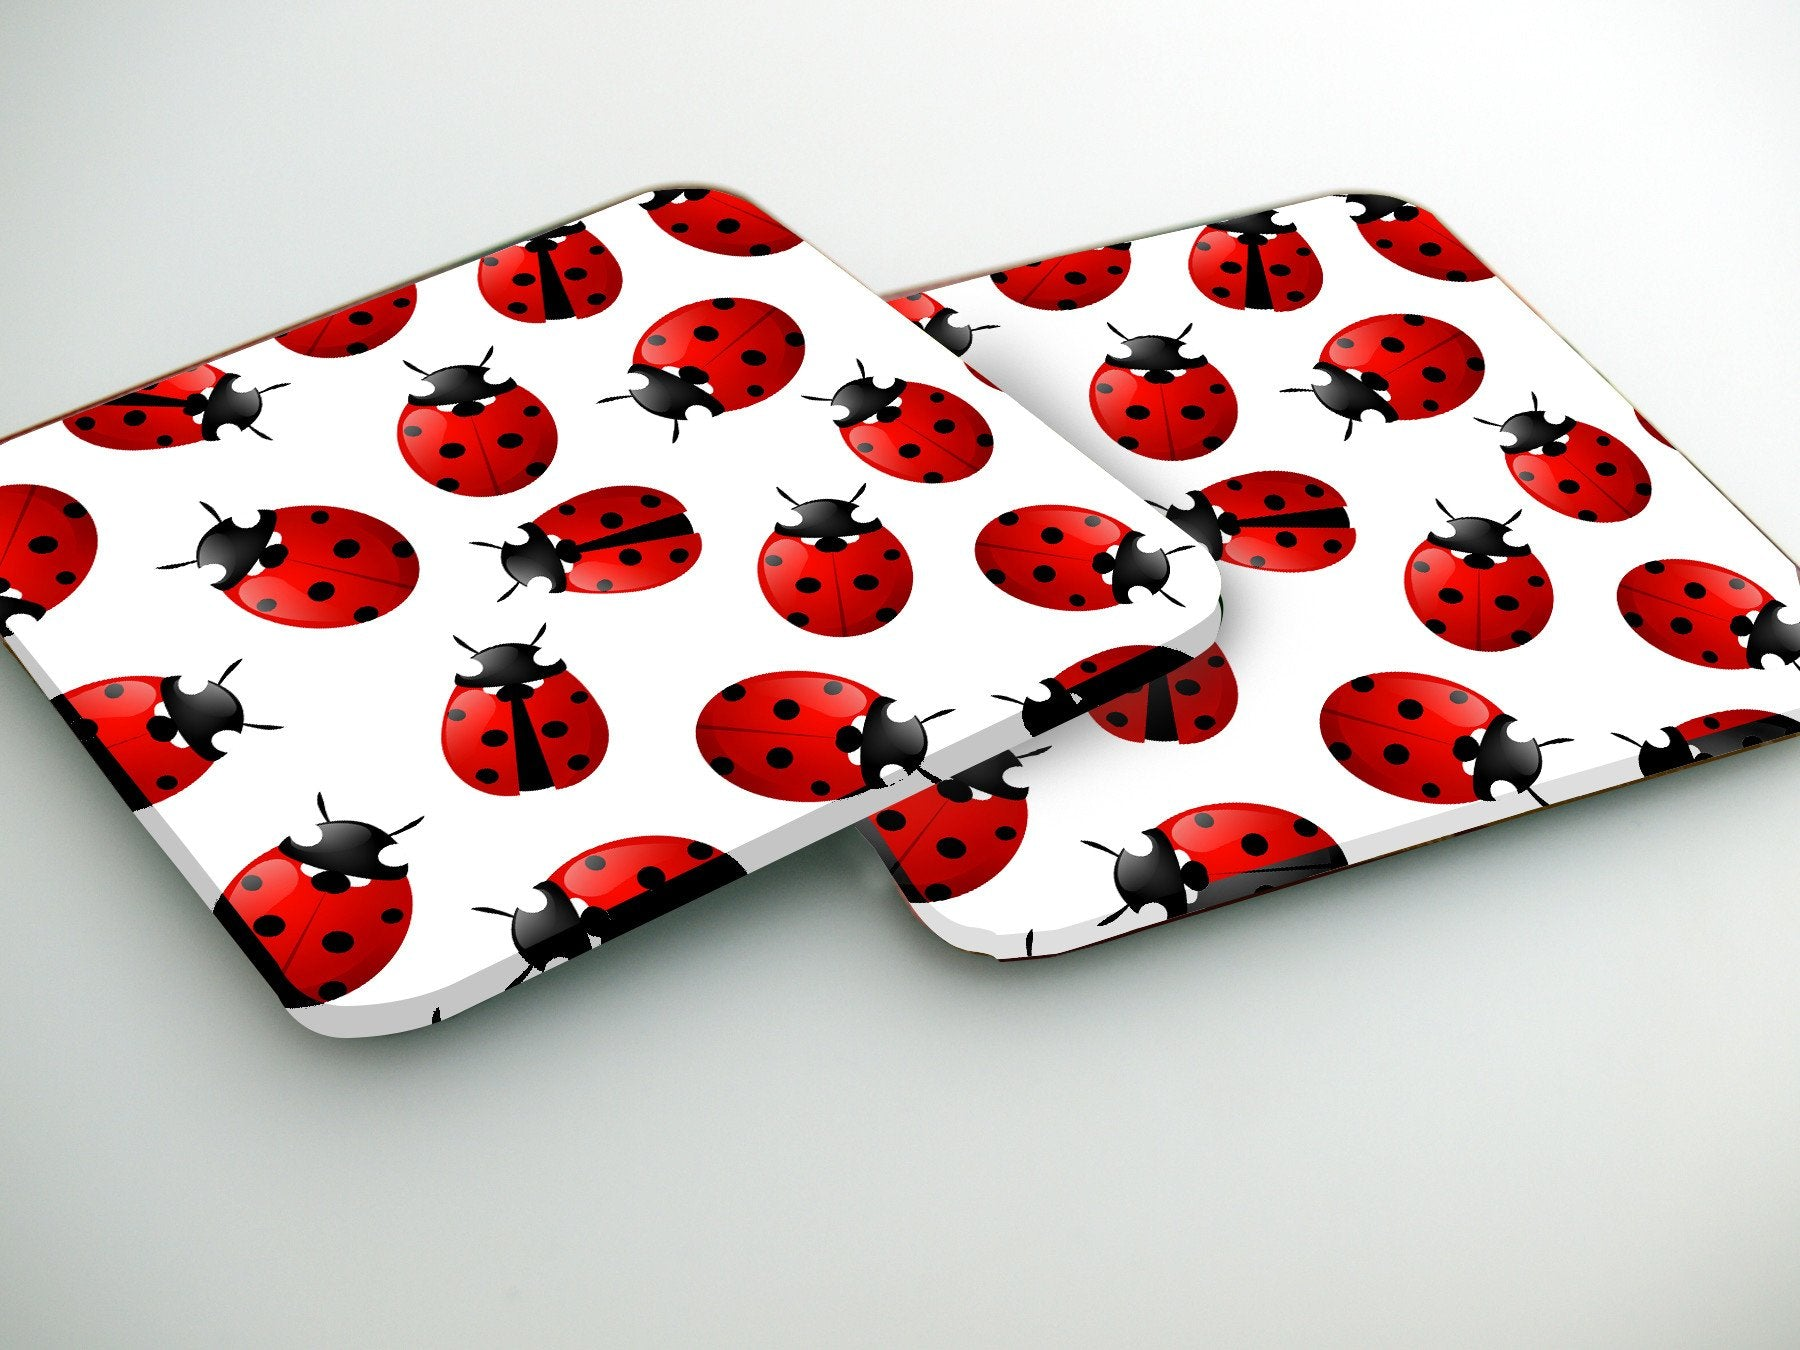 Podstavki za kozarce - Ladybug Color CO010 - Life-decor.si